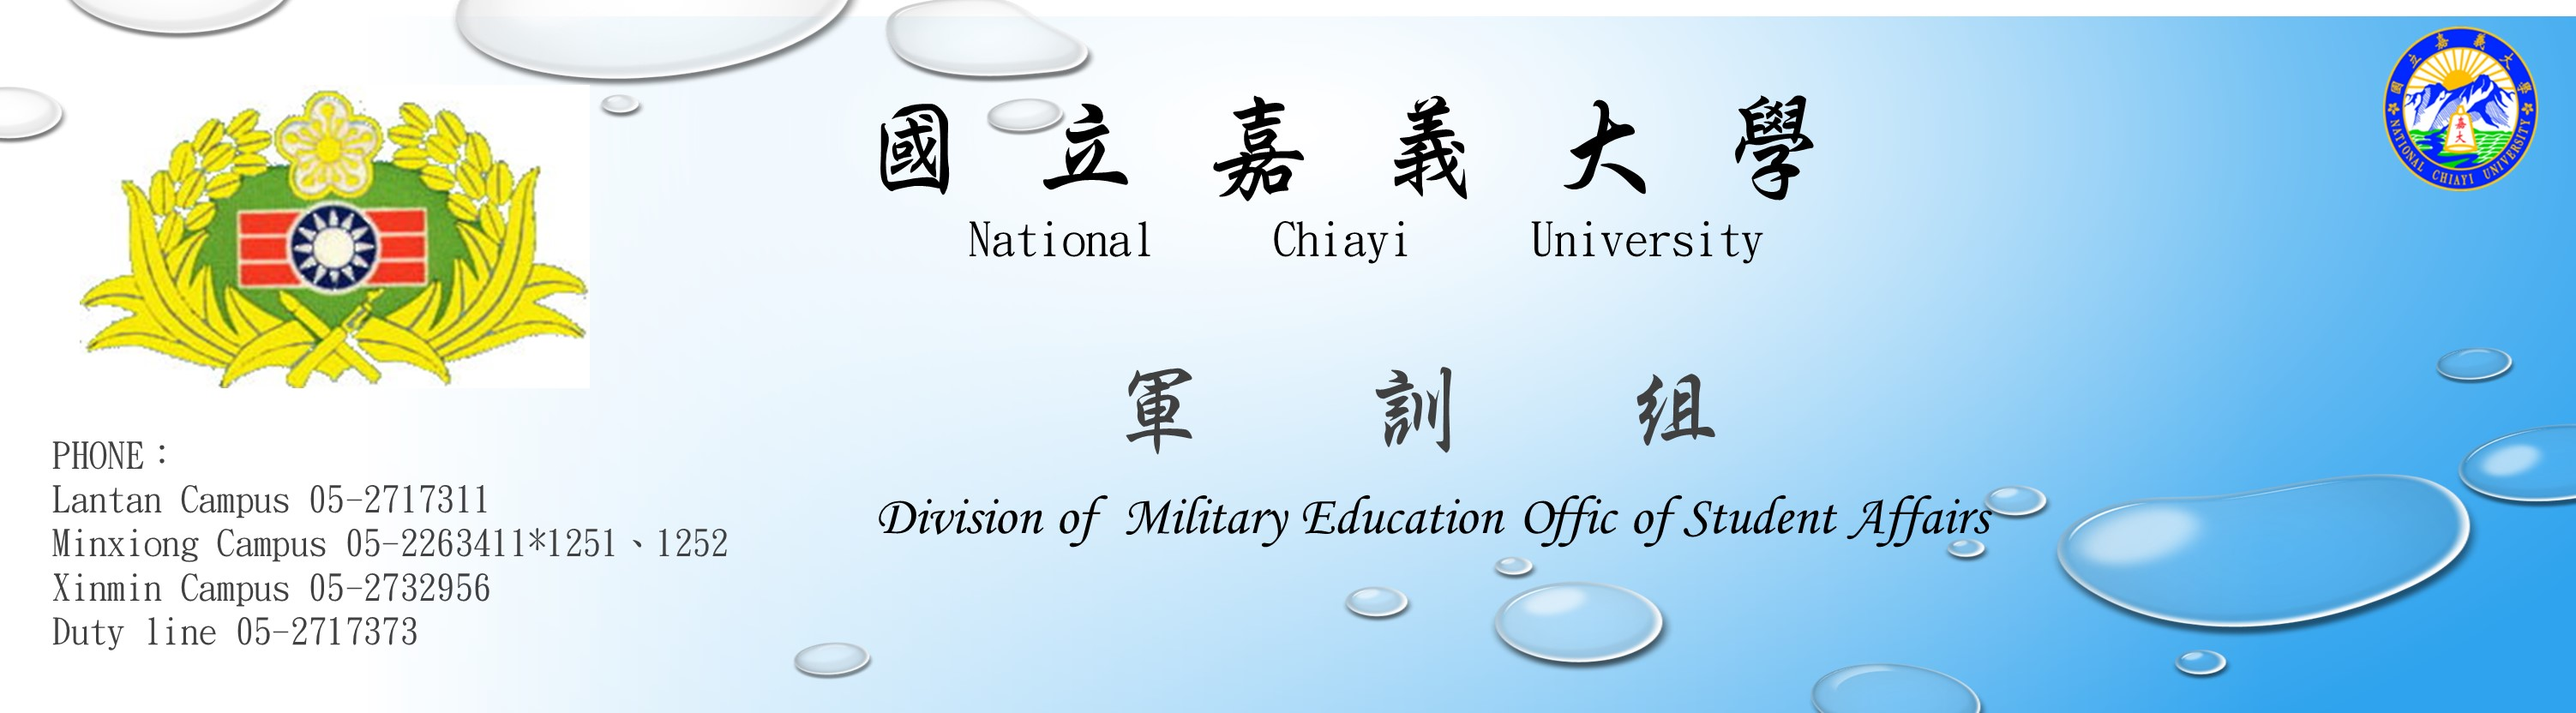 Division of Military Education